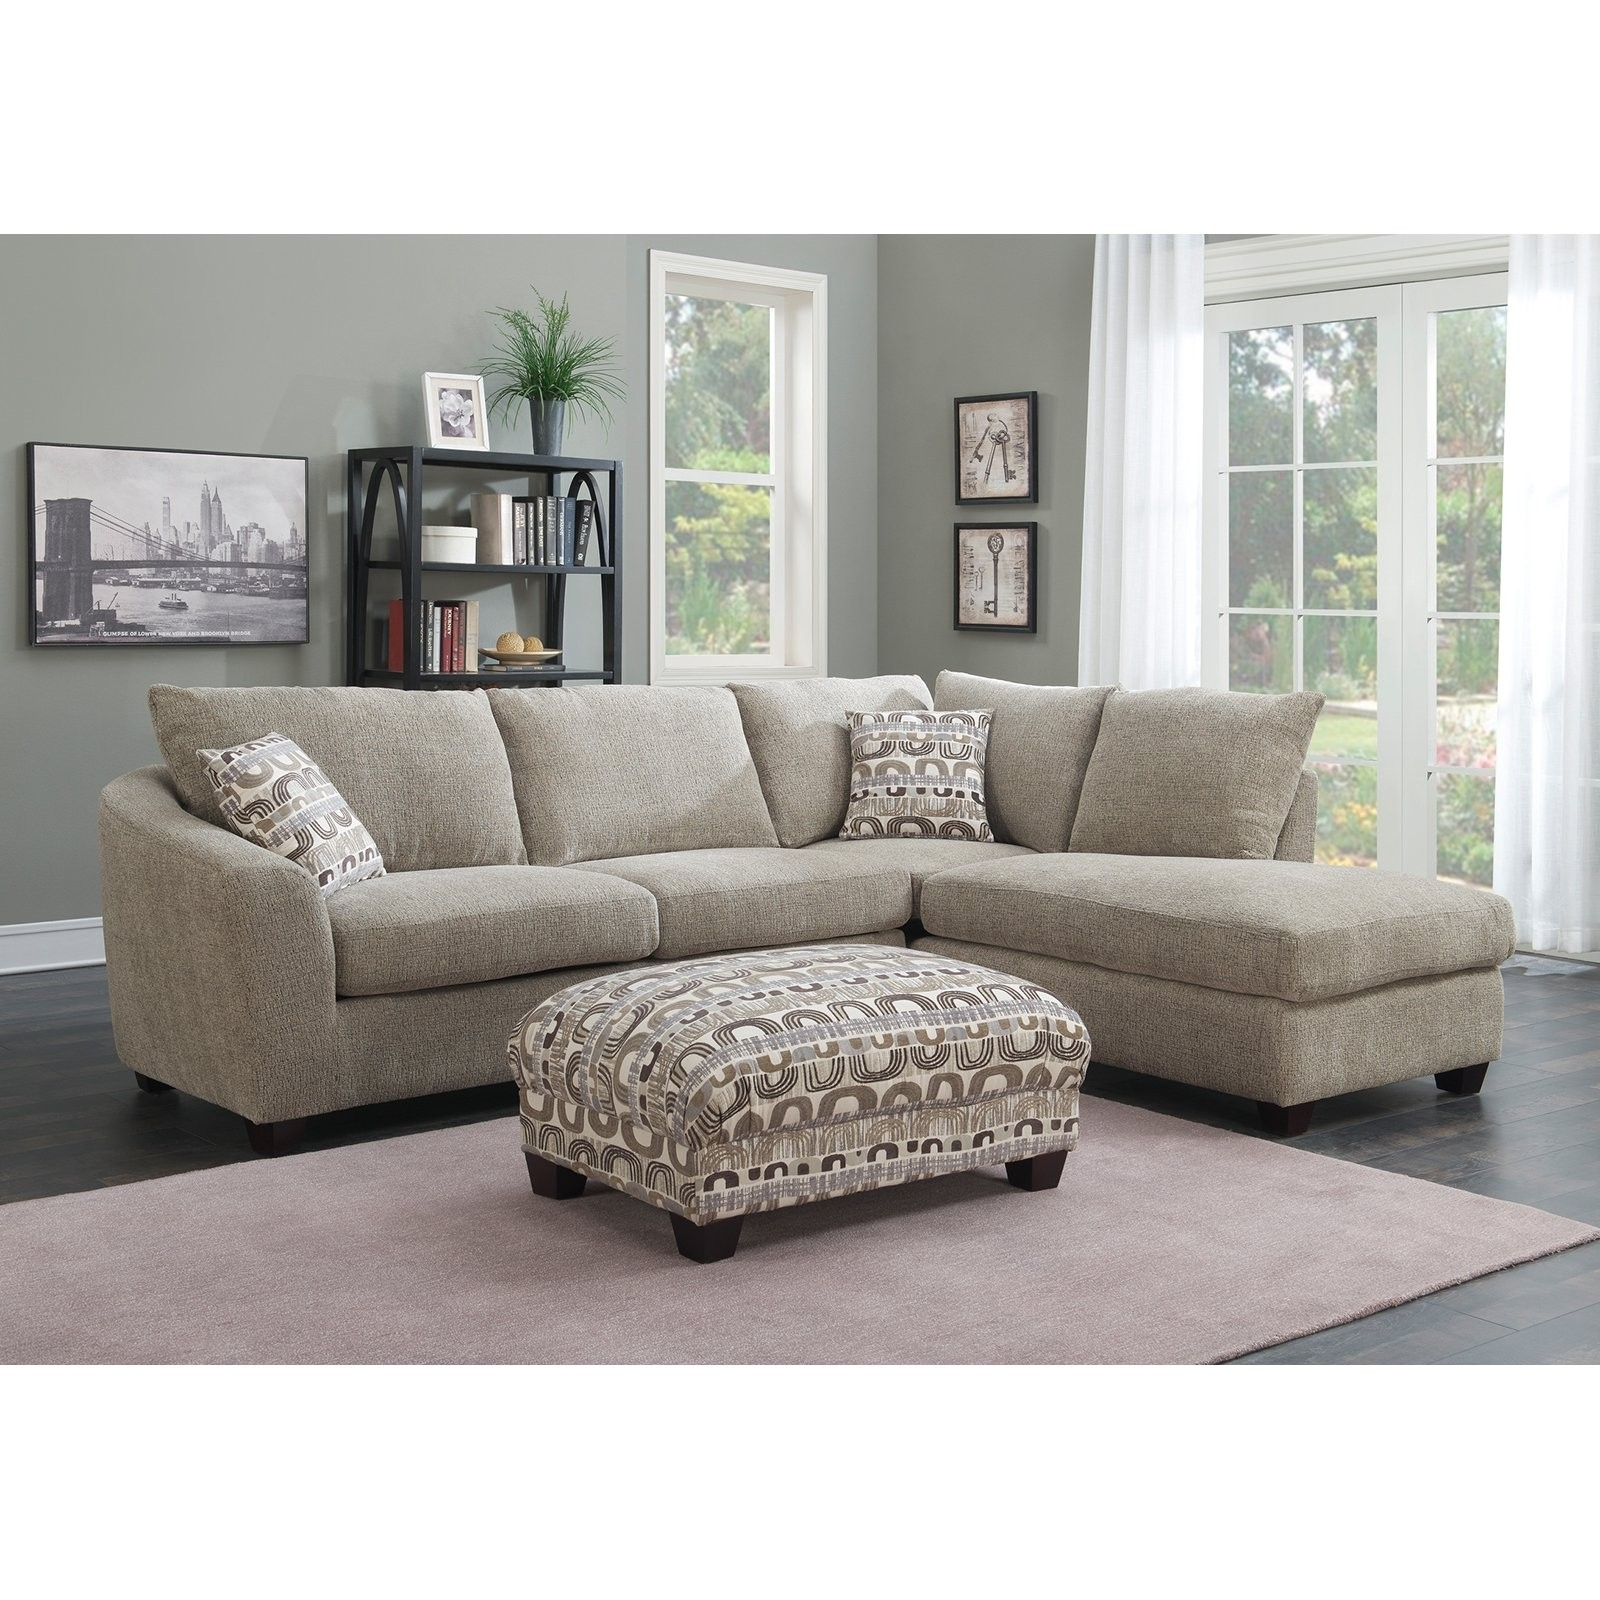 2 Piece Sectional With Chaise Delano W Laf Oversized Living Spaces With Delano 2 Piece Sectionals With Raf Oversized Chaise (View 5 of 25)